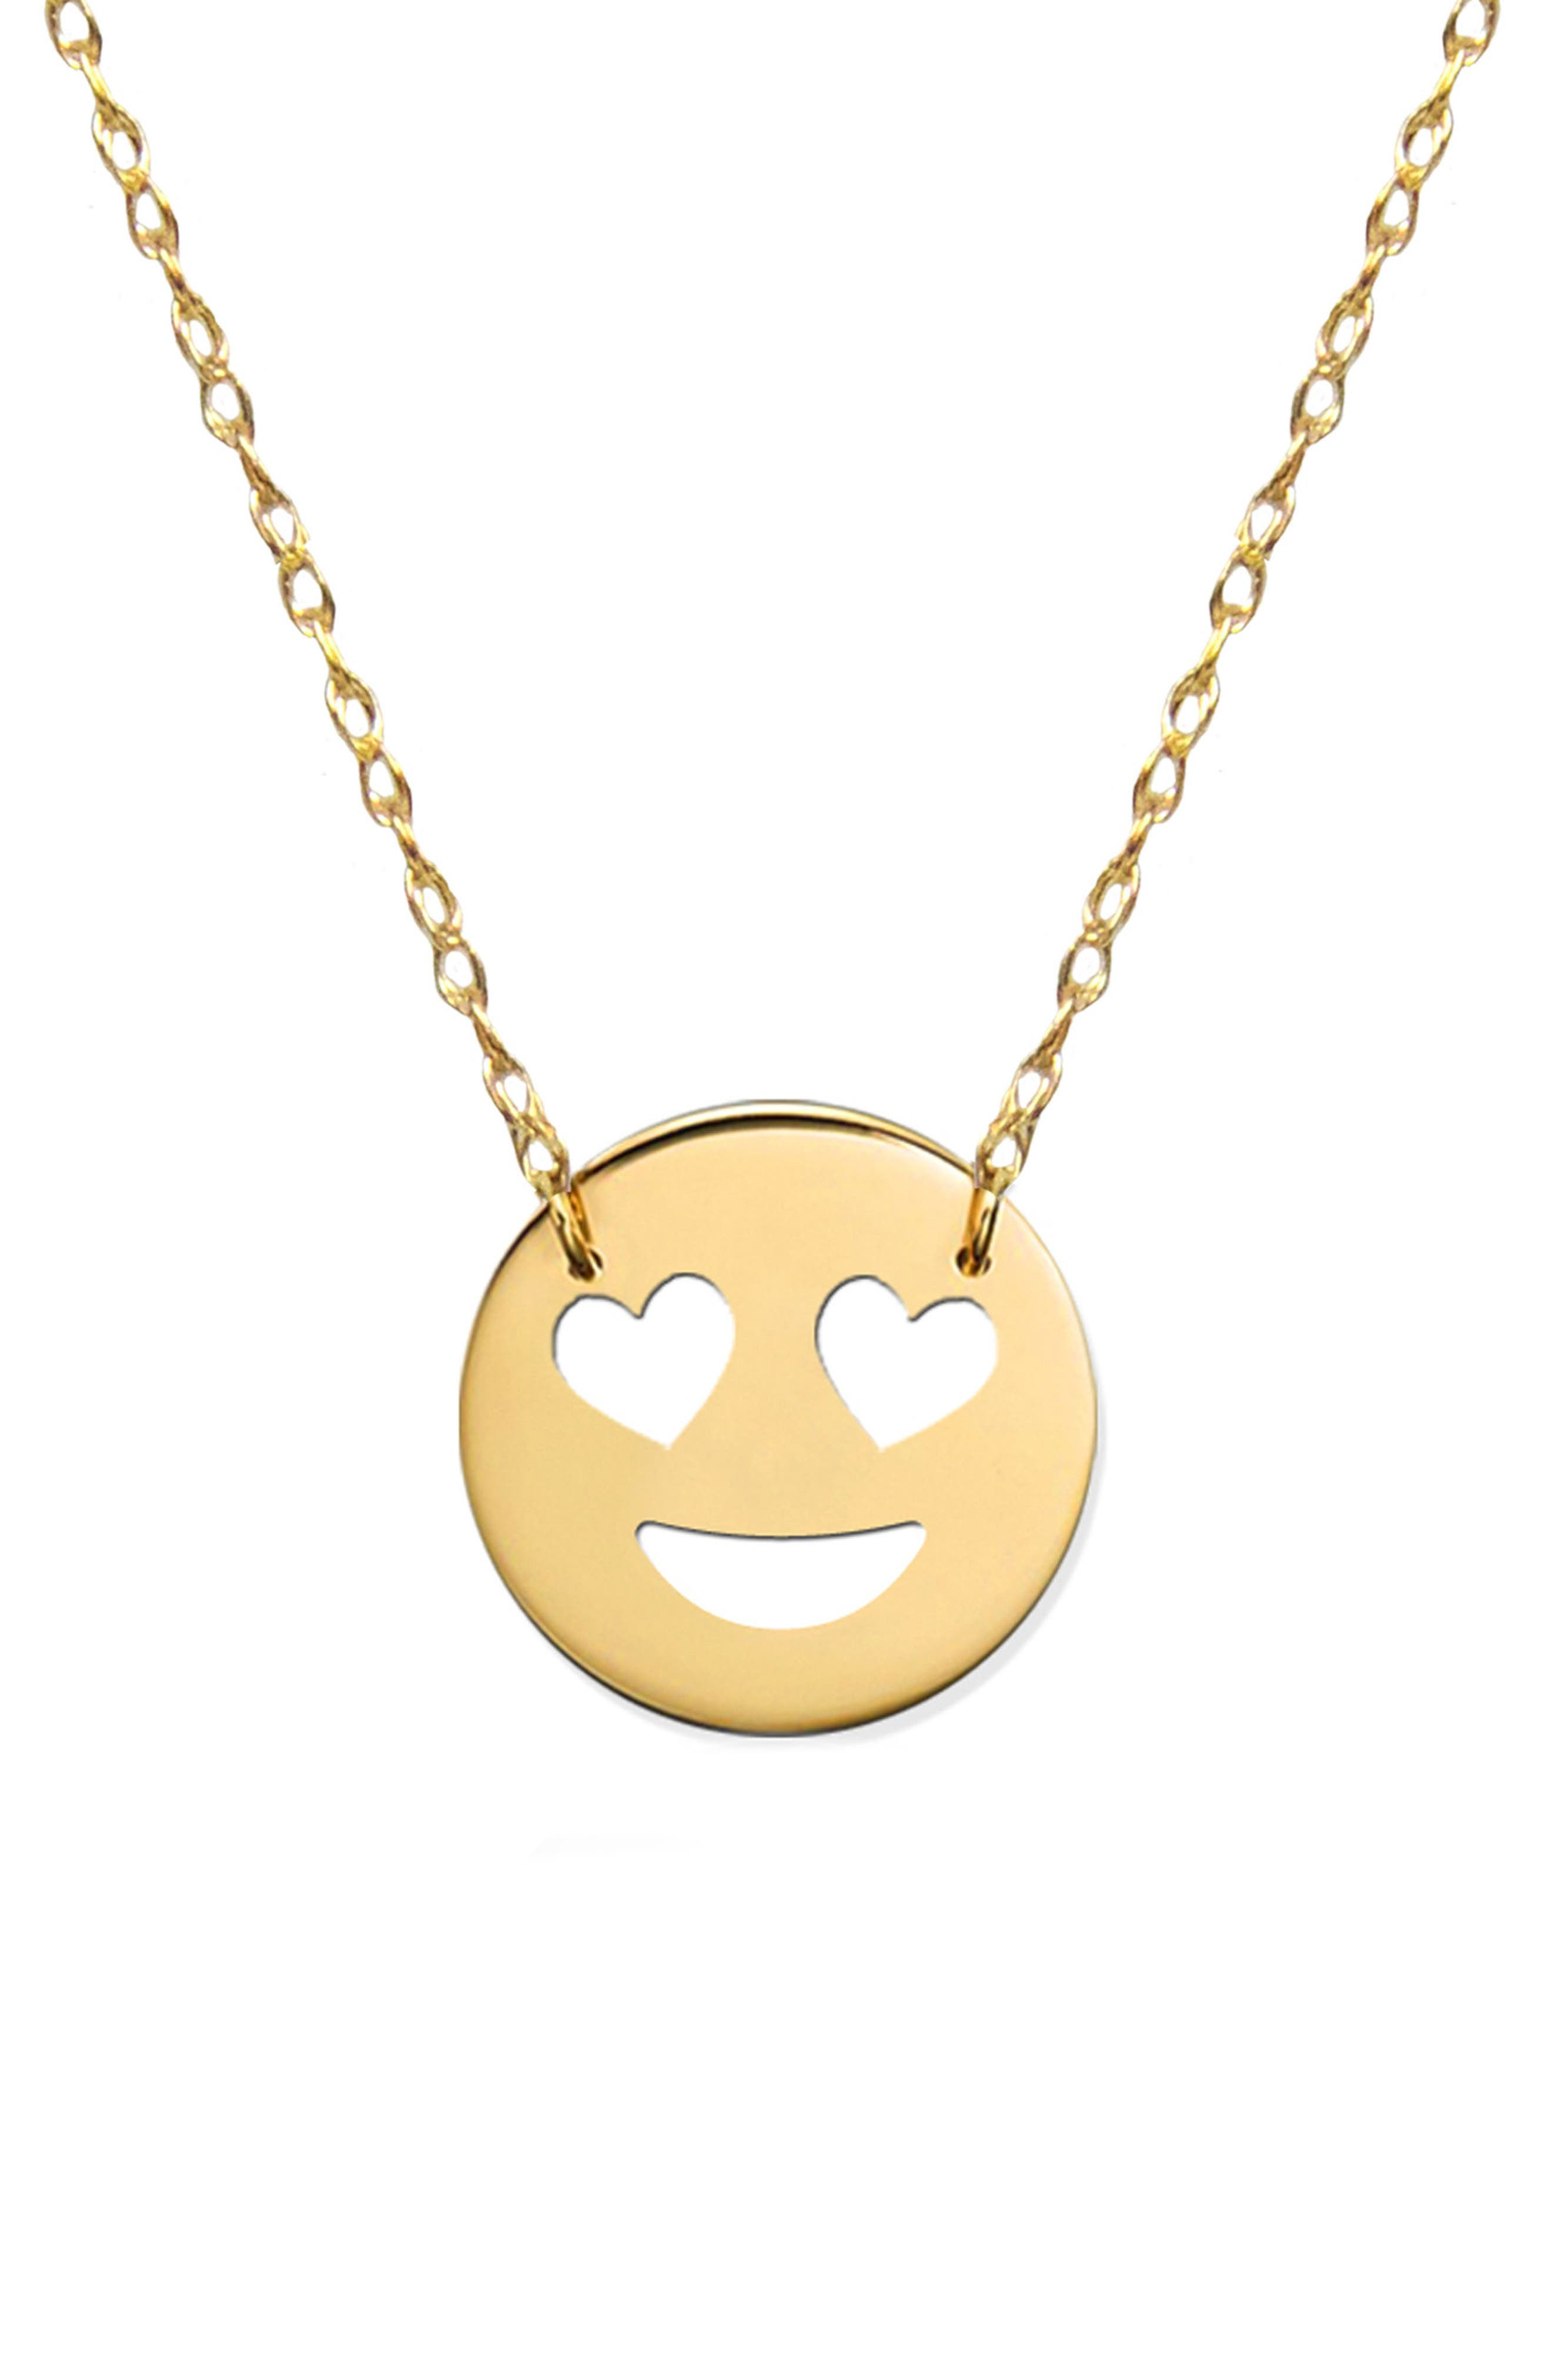 JANE BASCH DESIGNS Love Emoji Pendant Necklace